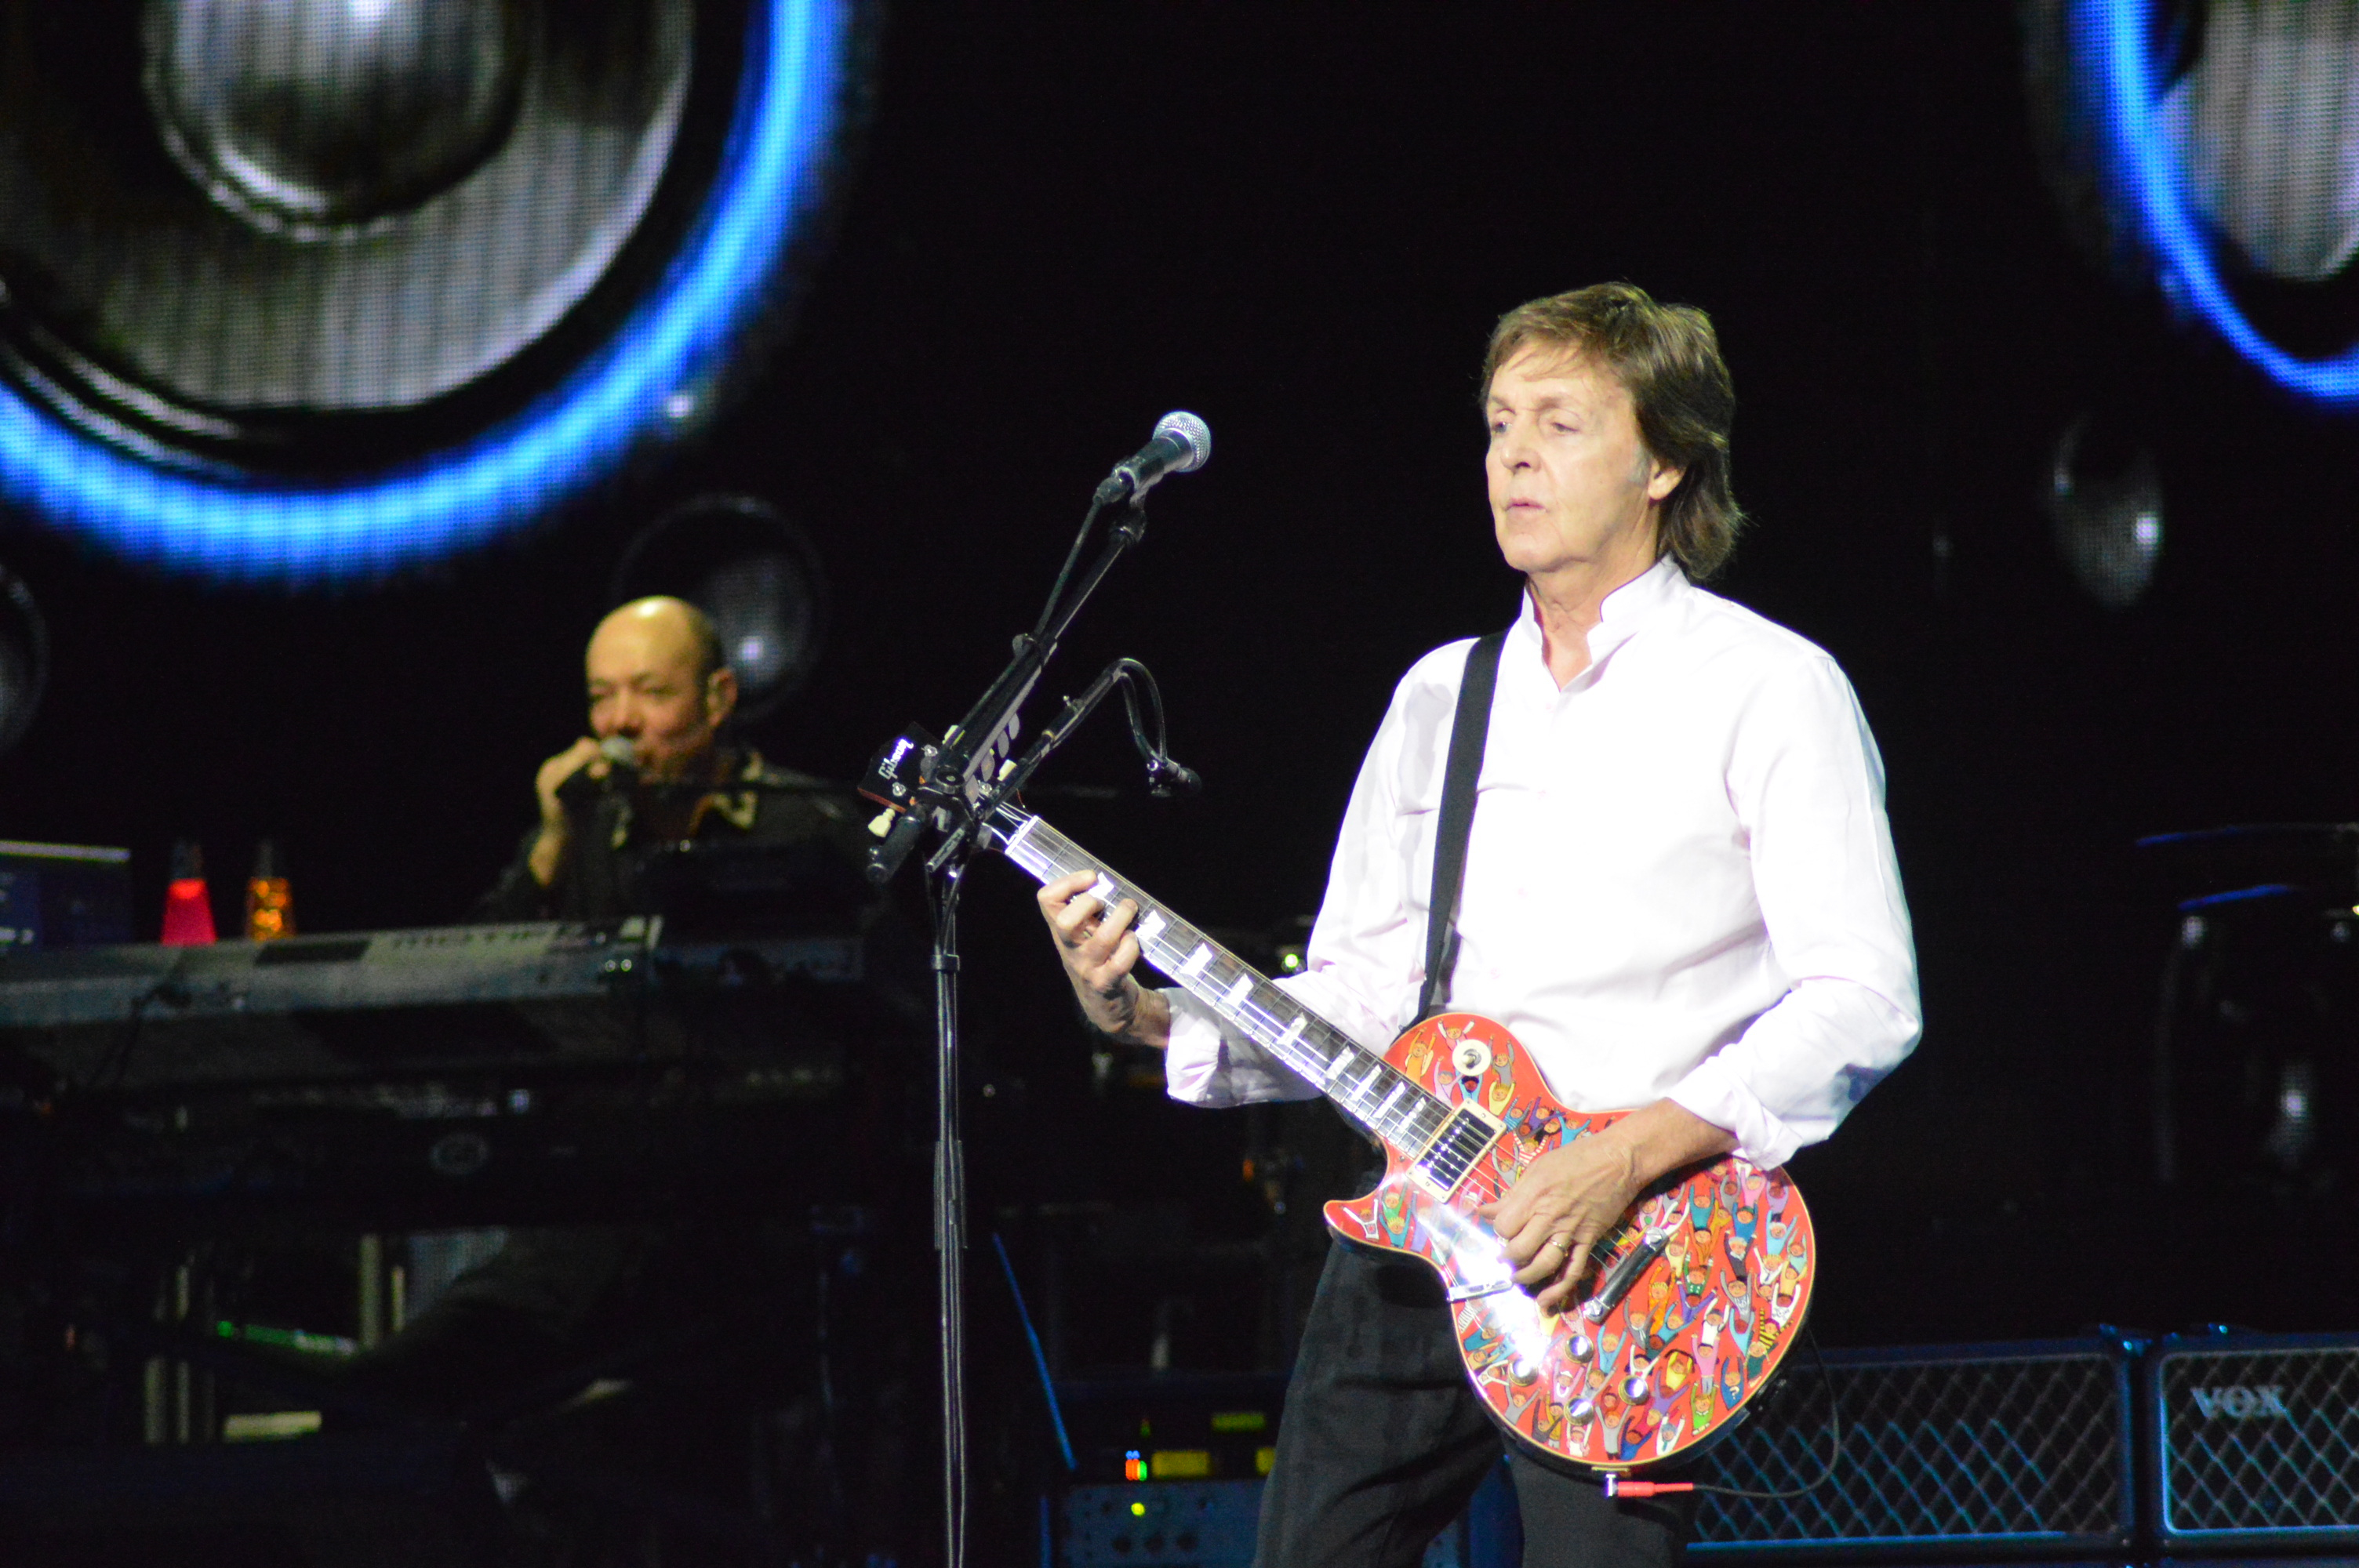 The Legendary Musical Icon Paul McCartney Completed His Two Night Run At New Golden 1 Center In Downtown Sacramento Sir Had Opportunity